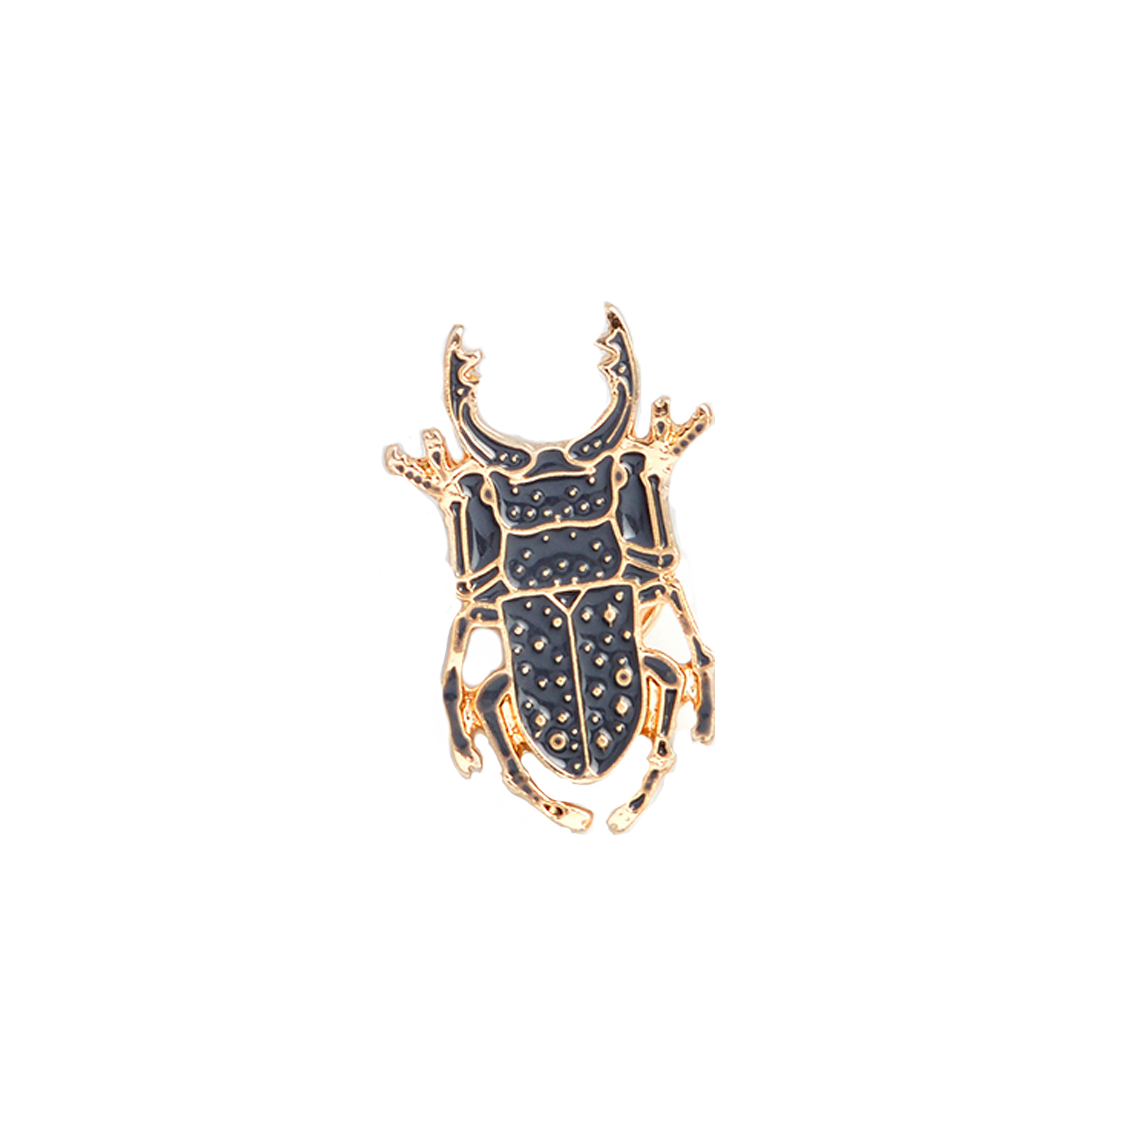 Black Scarab Insect Brooch